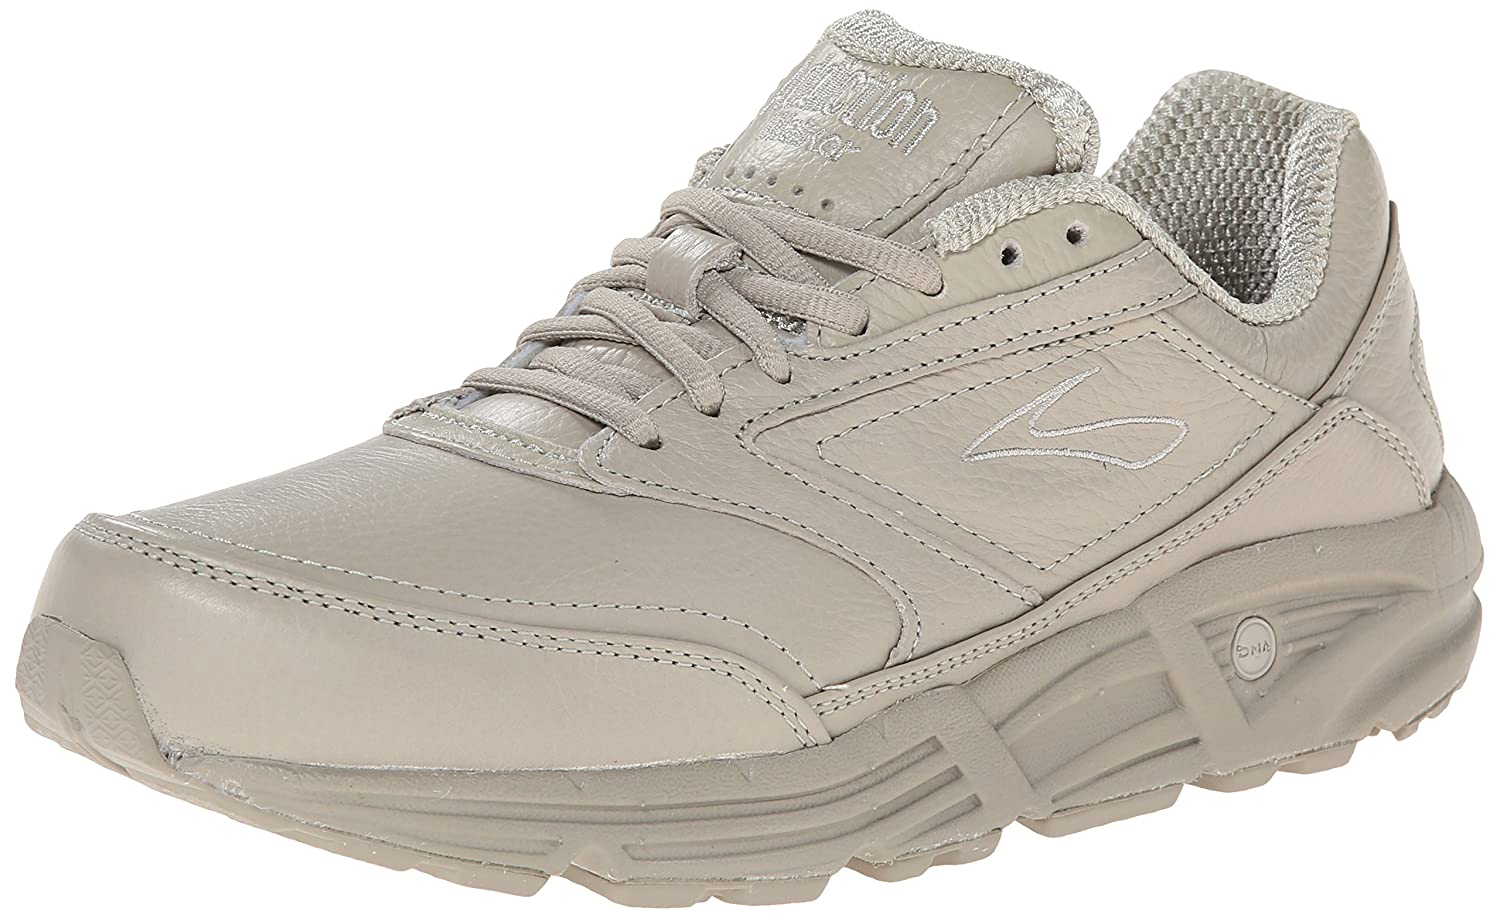 Brooks Women's Addiction Walker Walking Shoes B0012ILLXO 7.5 D|Bone